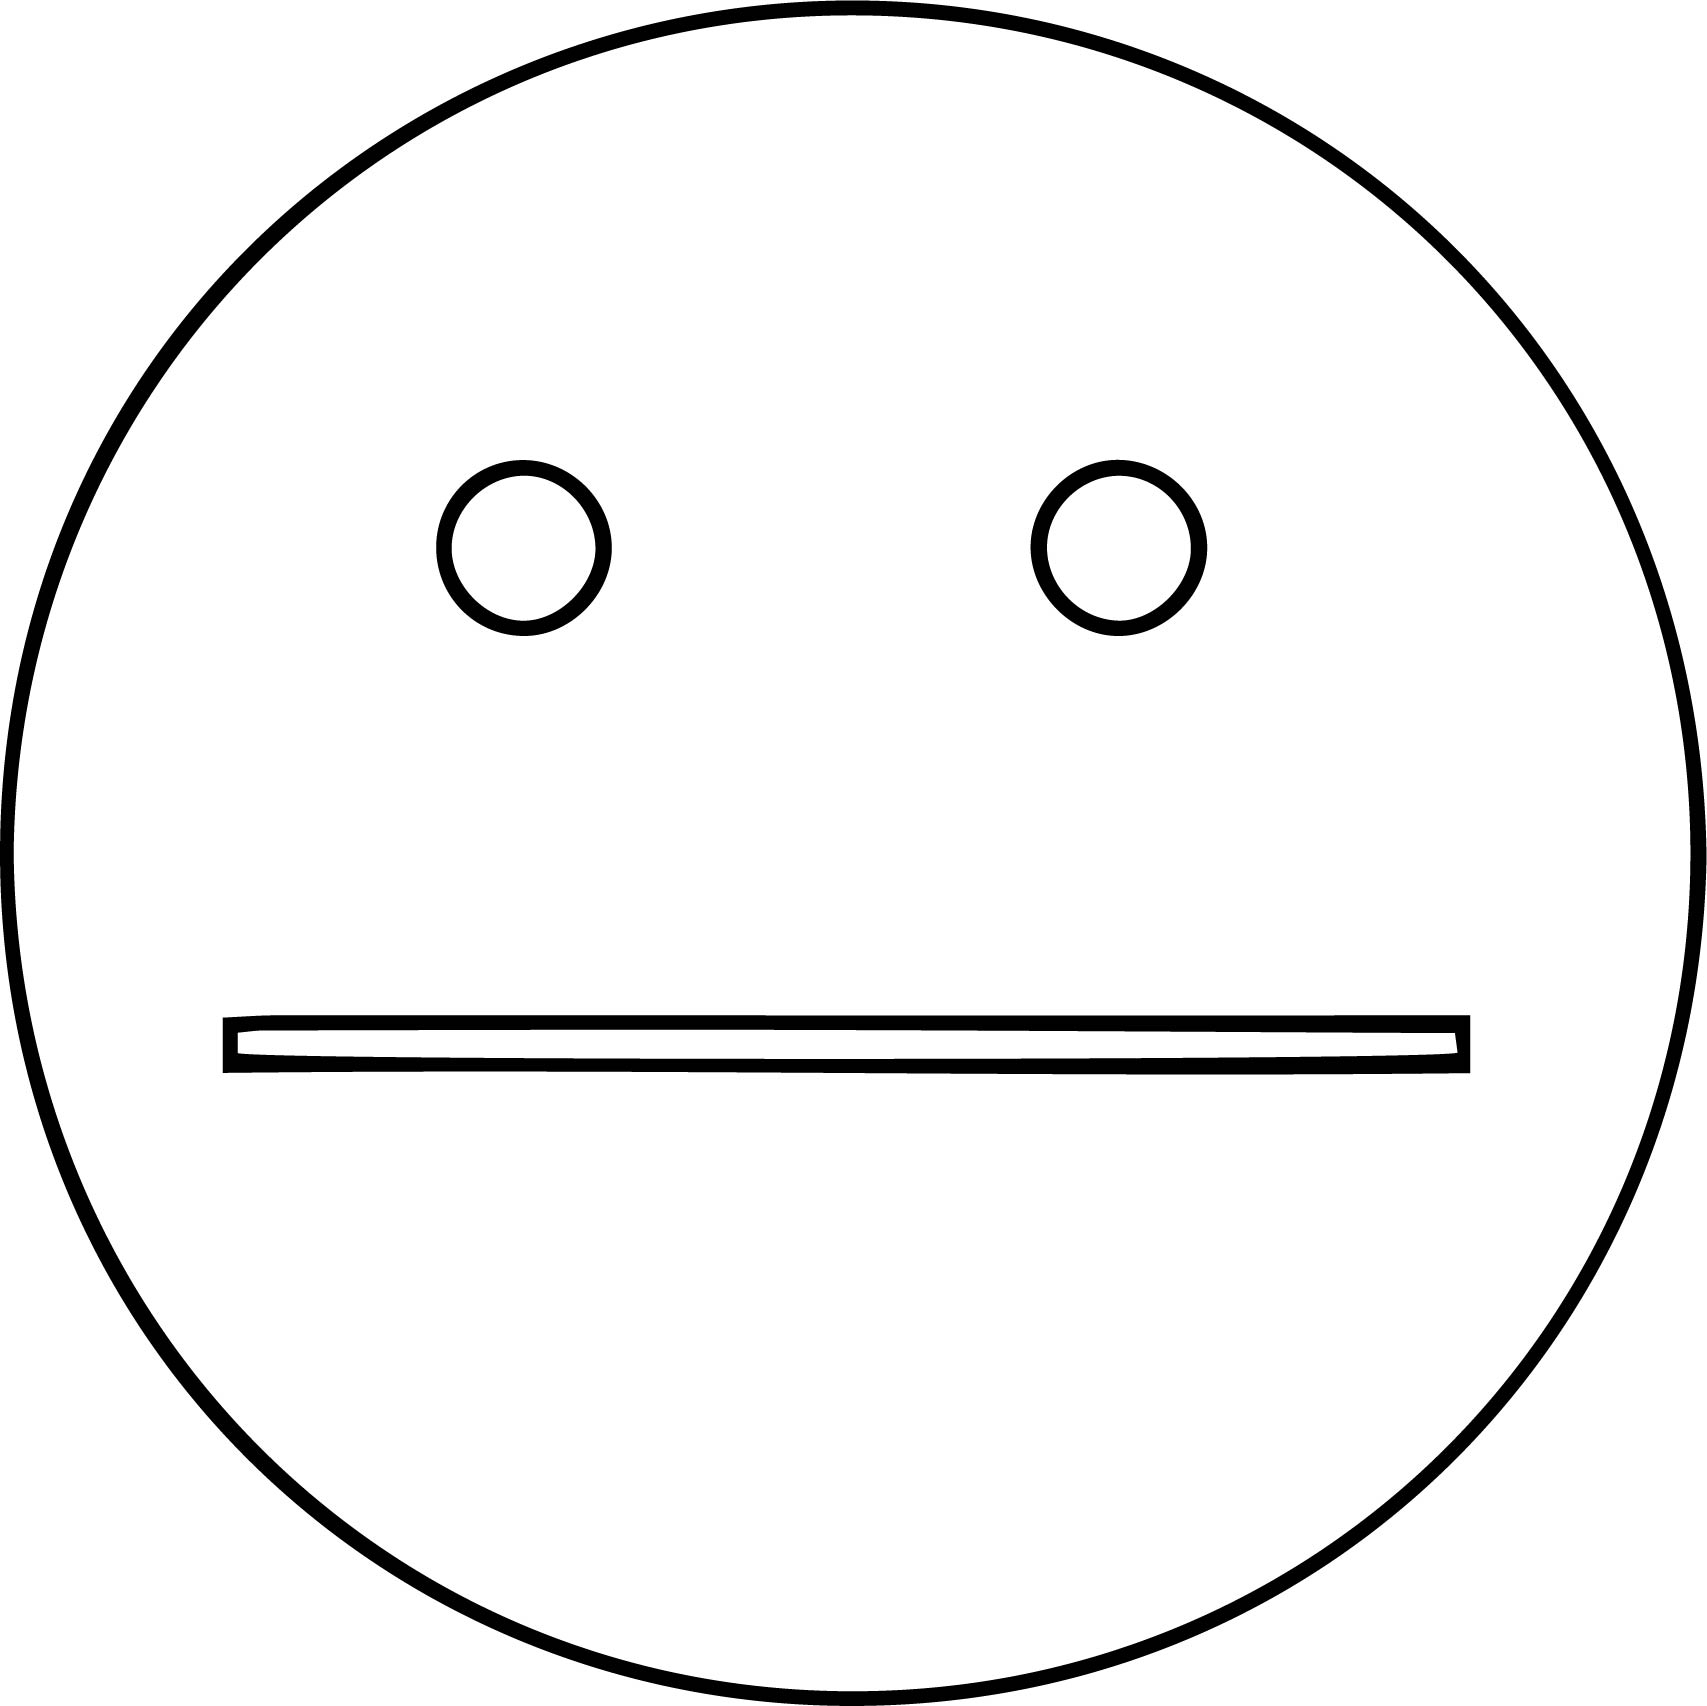 Happy And Sad Face Free Images Coloring Page | Wecoloringpage